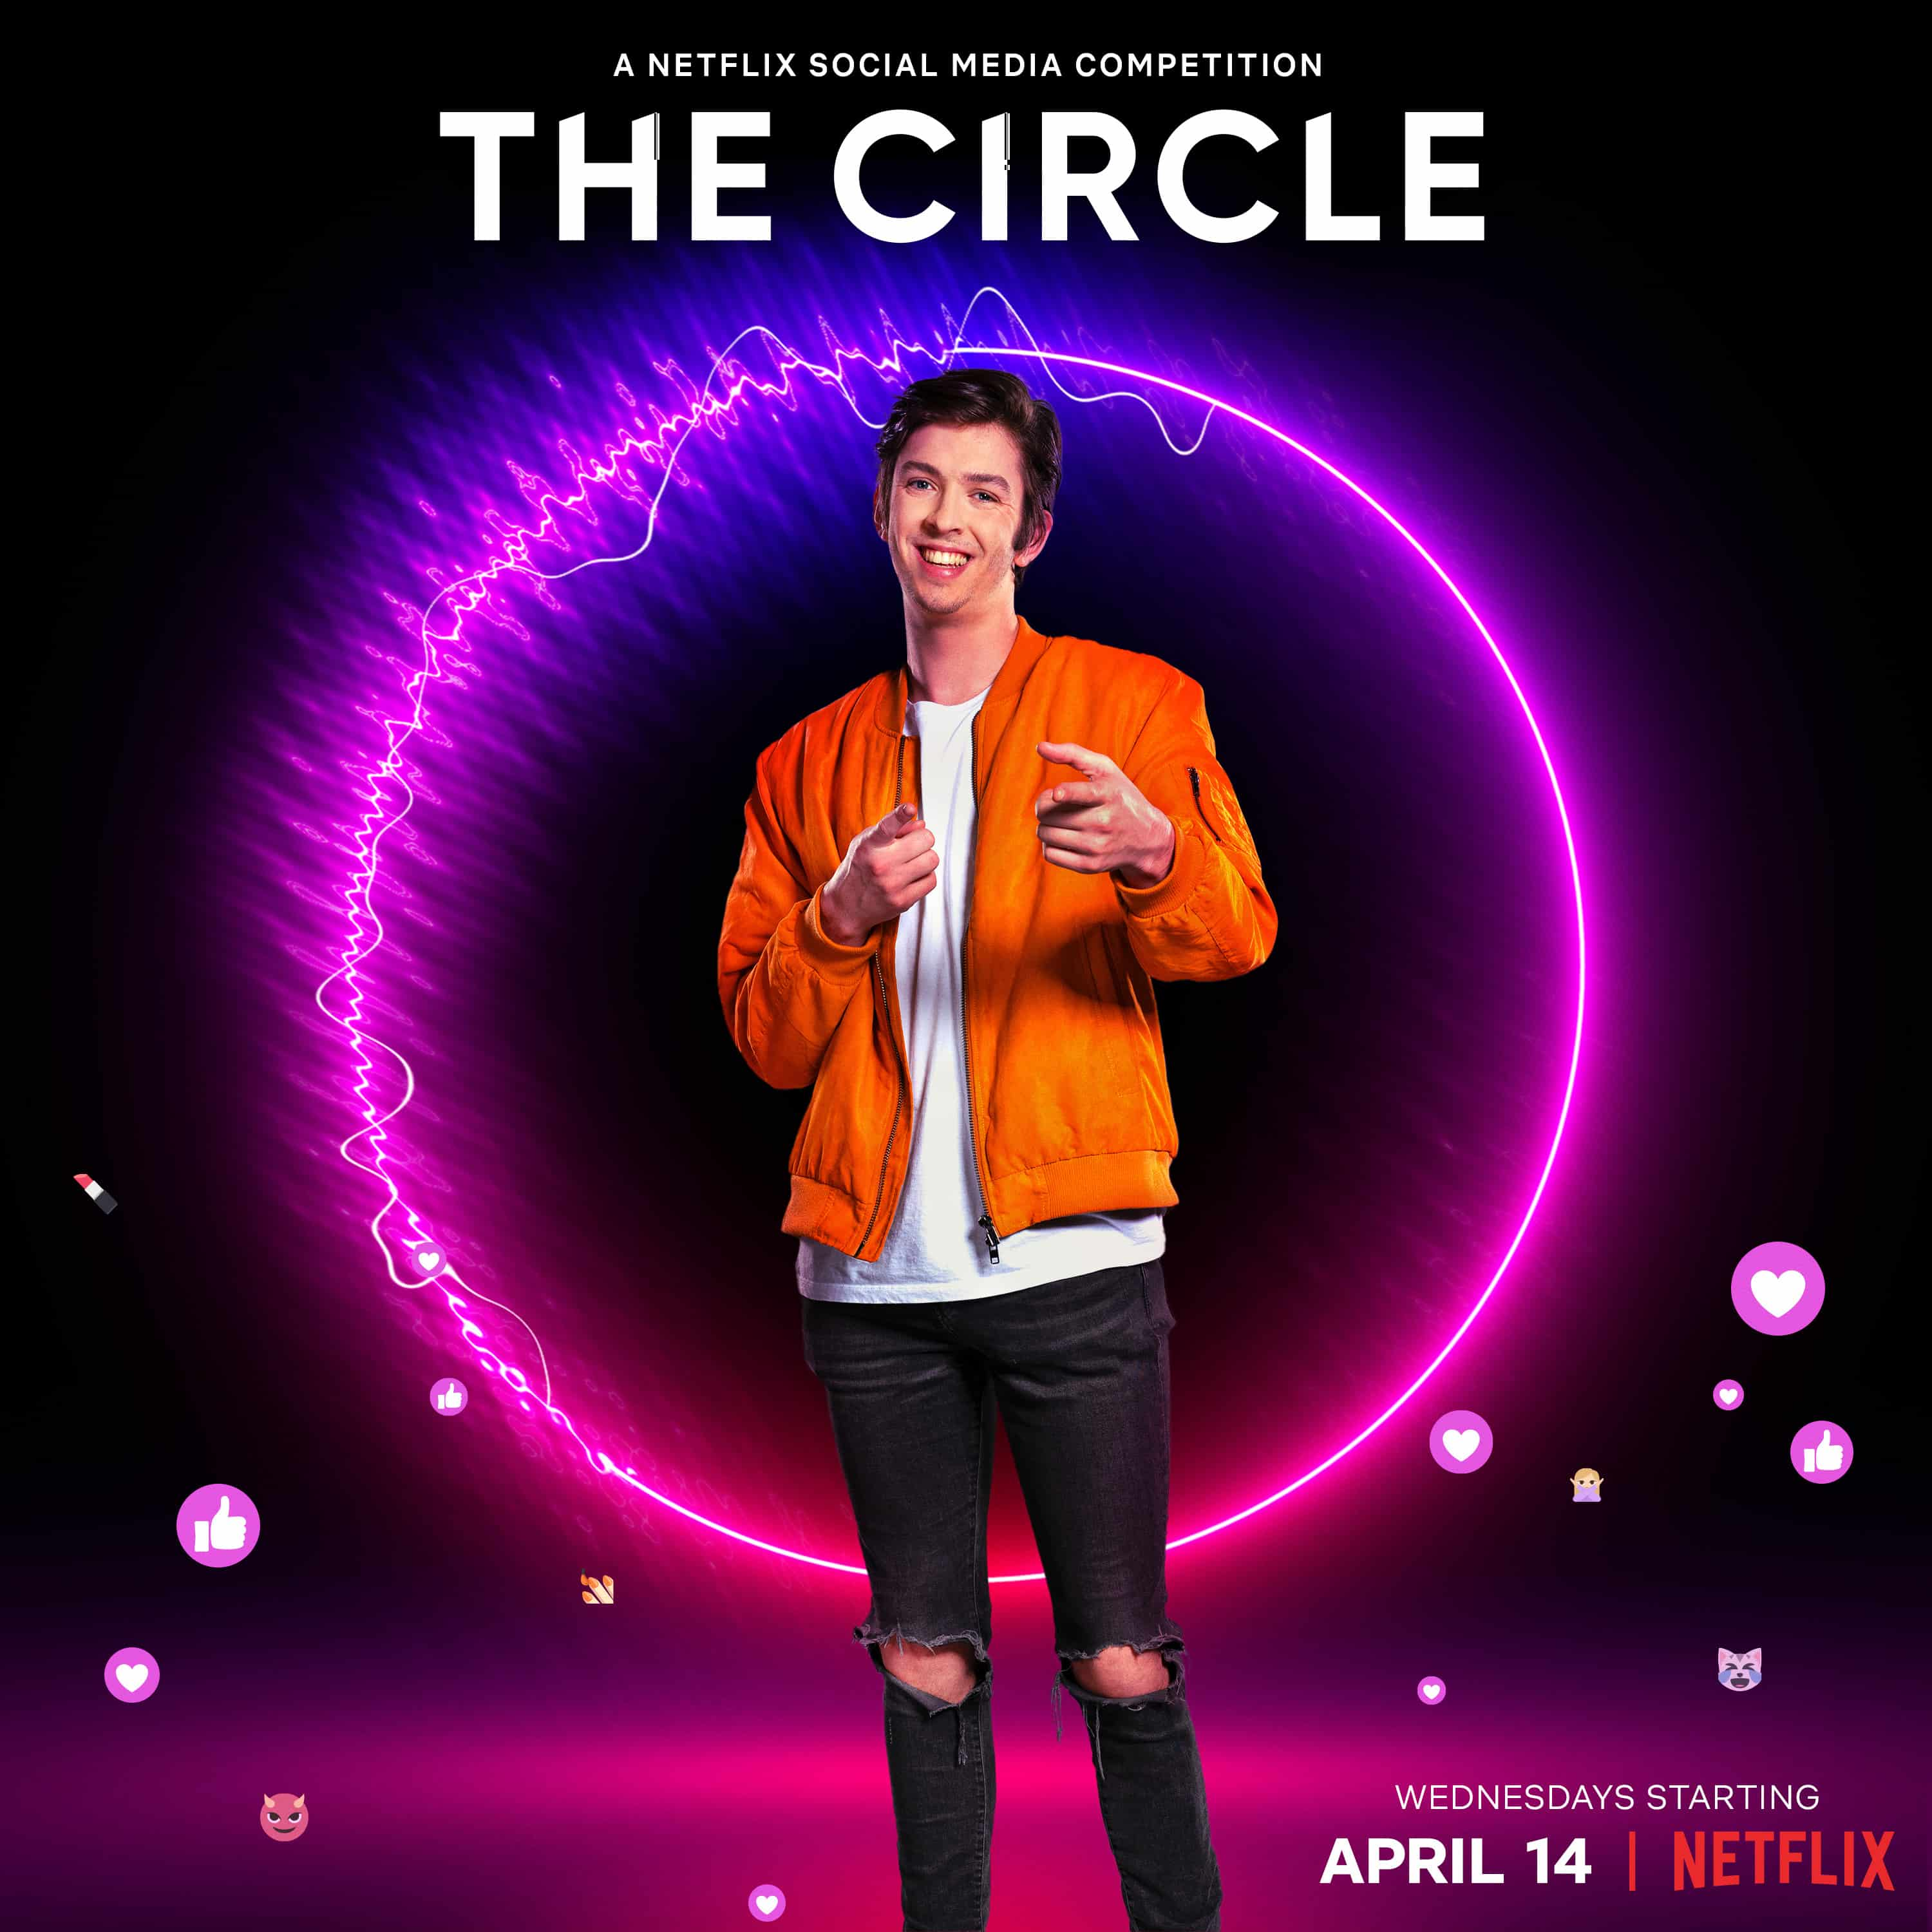 Jack in promotional material for The Circle Season 2